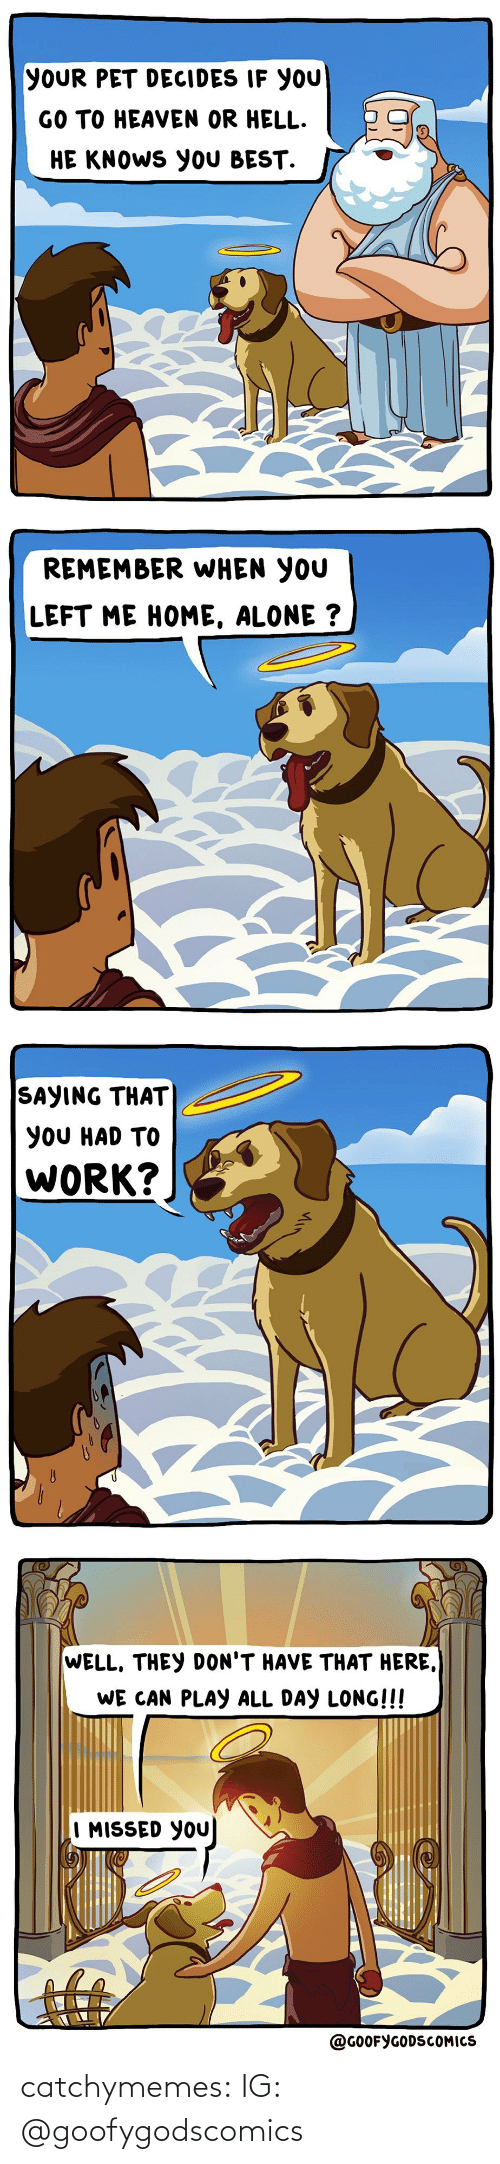 Here We: YOUR PET DECIDES IF YOU  GO TO HEAVEN OR HELL.  HE KNOWS YOU BEST.   REMEMBER WHEN YOU  LEFT ME HOME, ALONE ?   SAYING THAT  YOU HAD TO  WORK?   WELL, THEY DON'T HAVE THAT HERE,  WE CAN PLAY ALL DAY LONG!!!  I MISSED YOU  @GOOFYGODSCOMICS catchymemes:  IG: @goofygodscomics